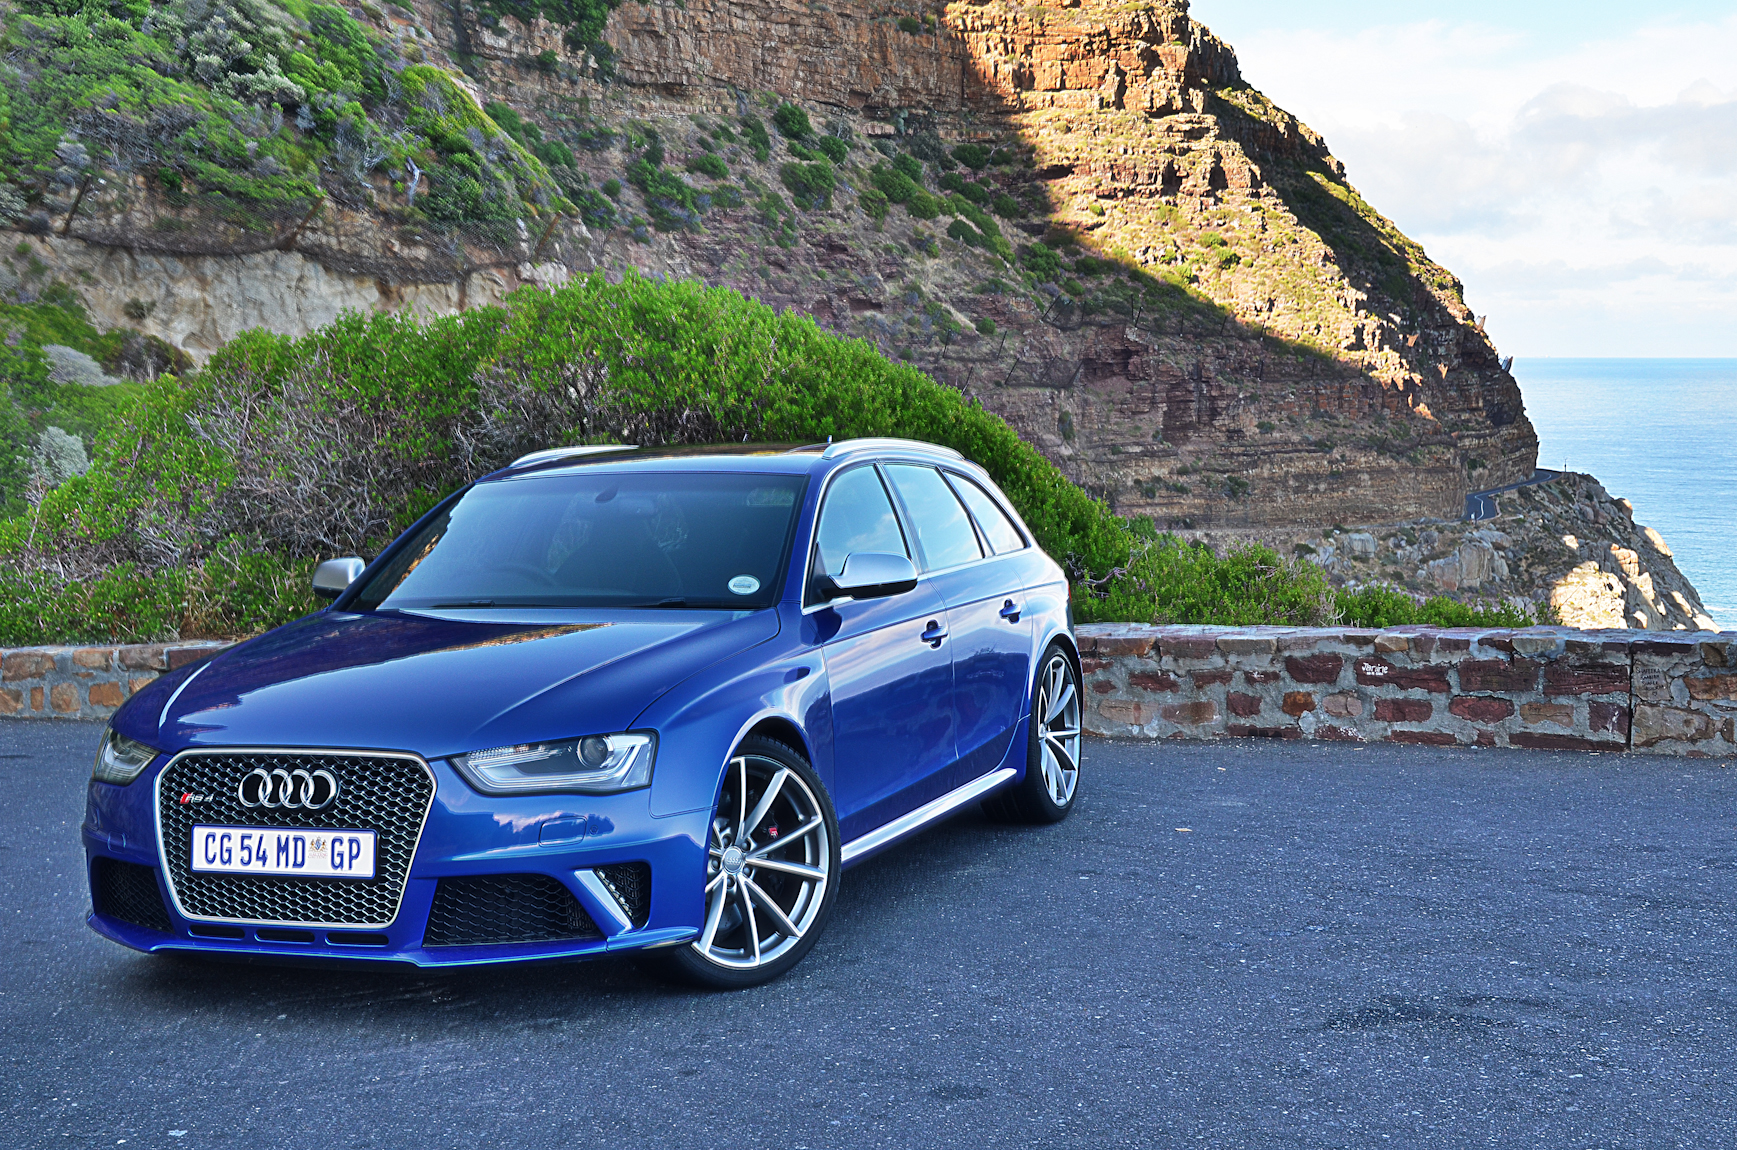 2015 Audi Rs4 Images Link Imager Images 2015 2016